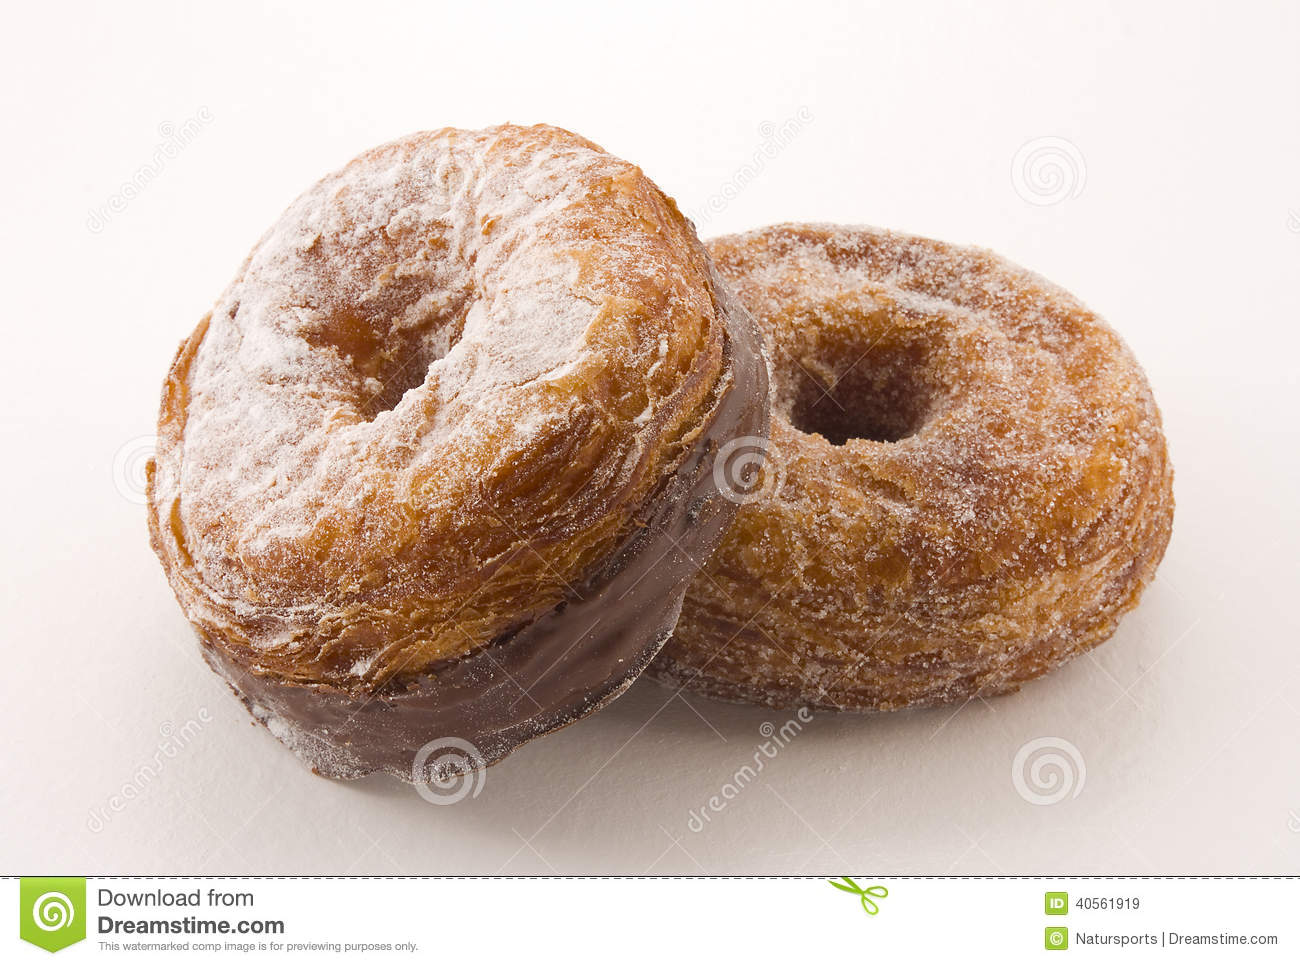 how to make donut mixture